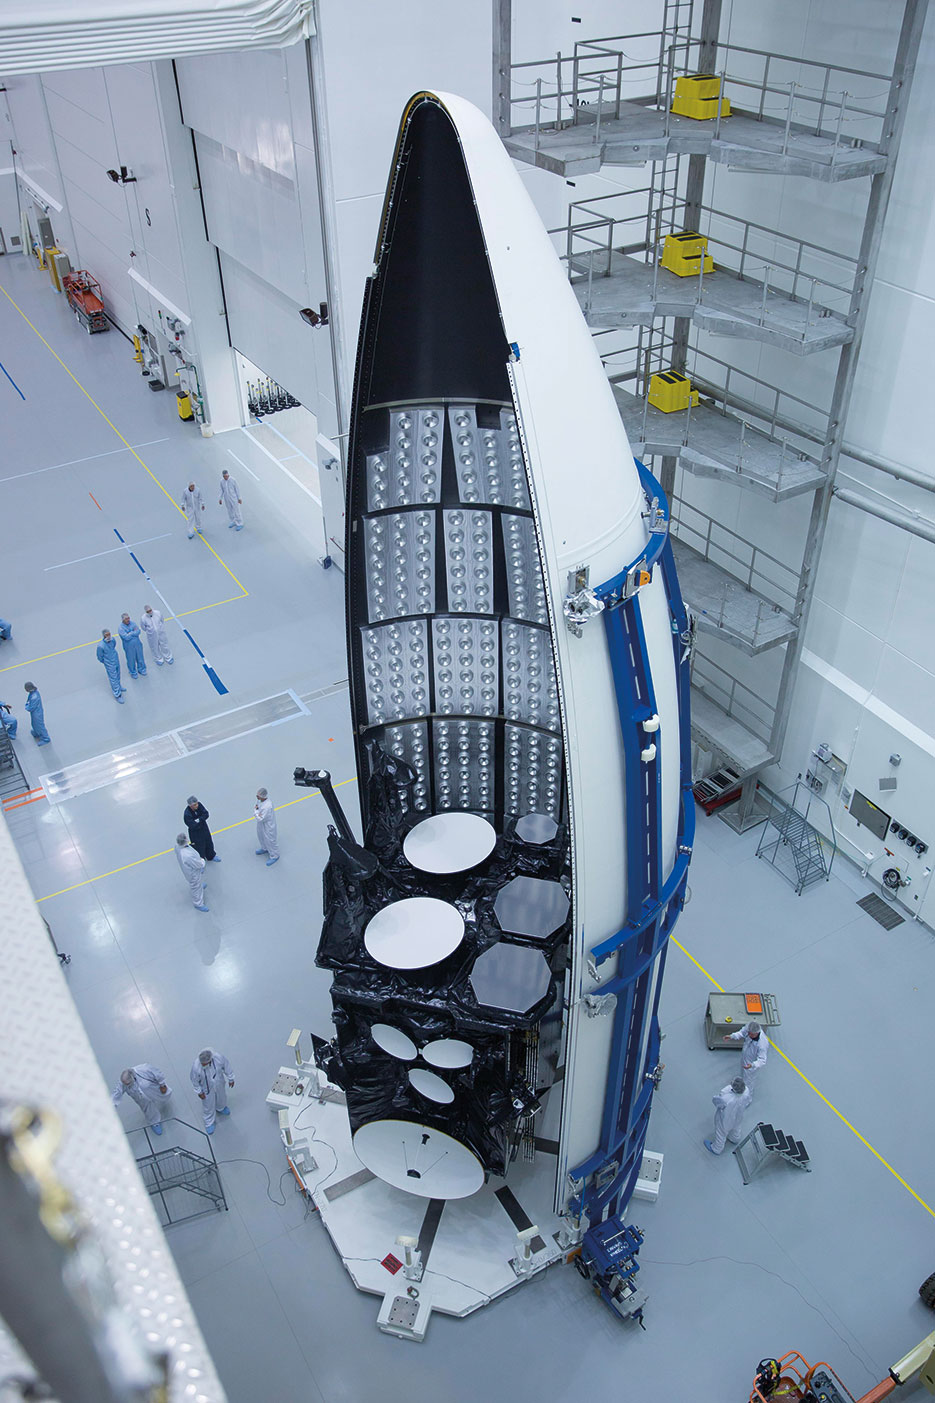 Workers prepare for launch of third Advanced Extremely High Frequency satellite, a joint-Service system that provides survivable, near worldwide, secure, protected, and jam-resistant communications for high-priority national military operations (Courtesy Lockheed Martin)